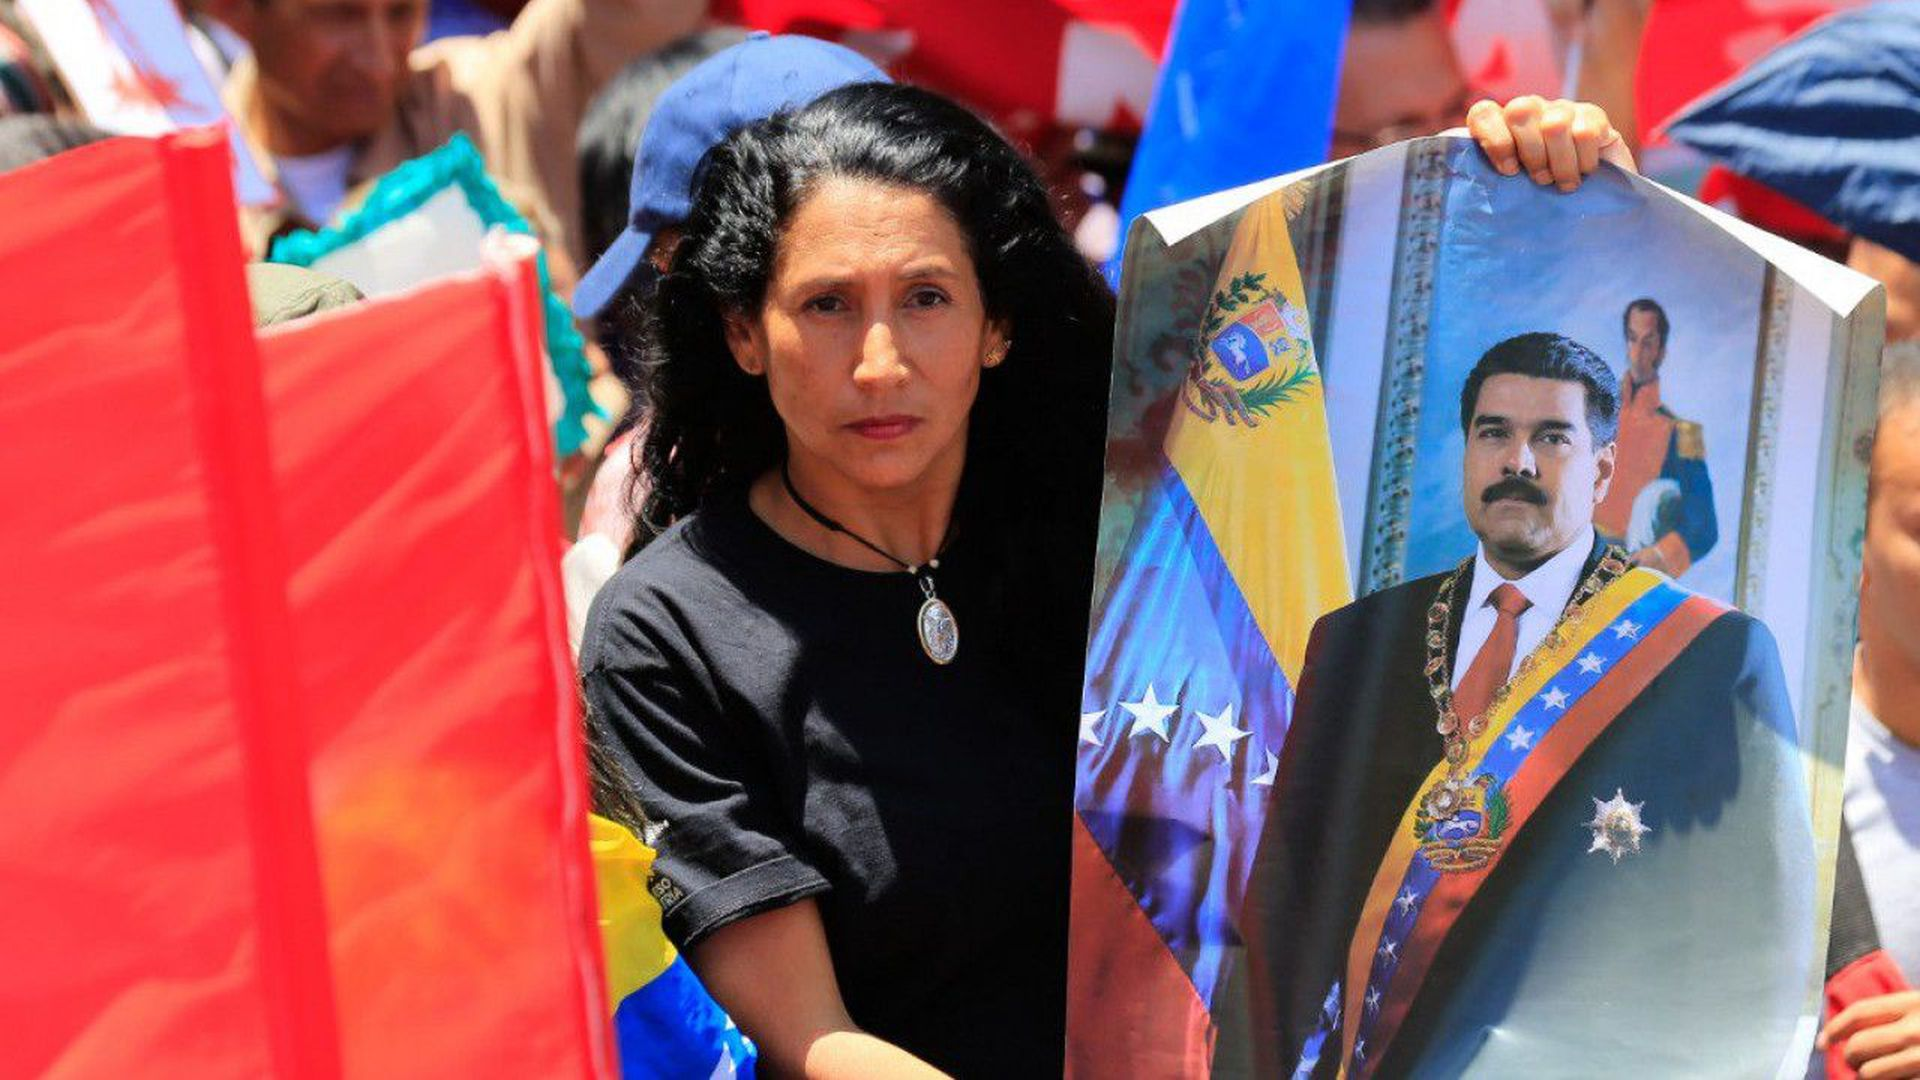 In this image, a woman holds a poster of Maduro outside during a protest.